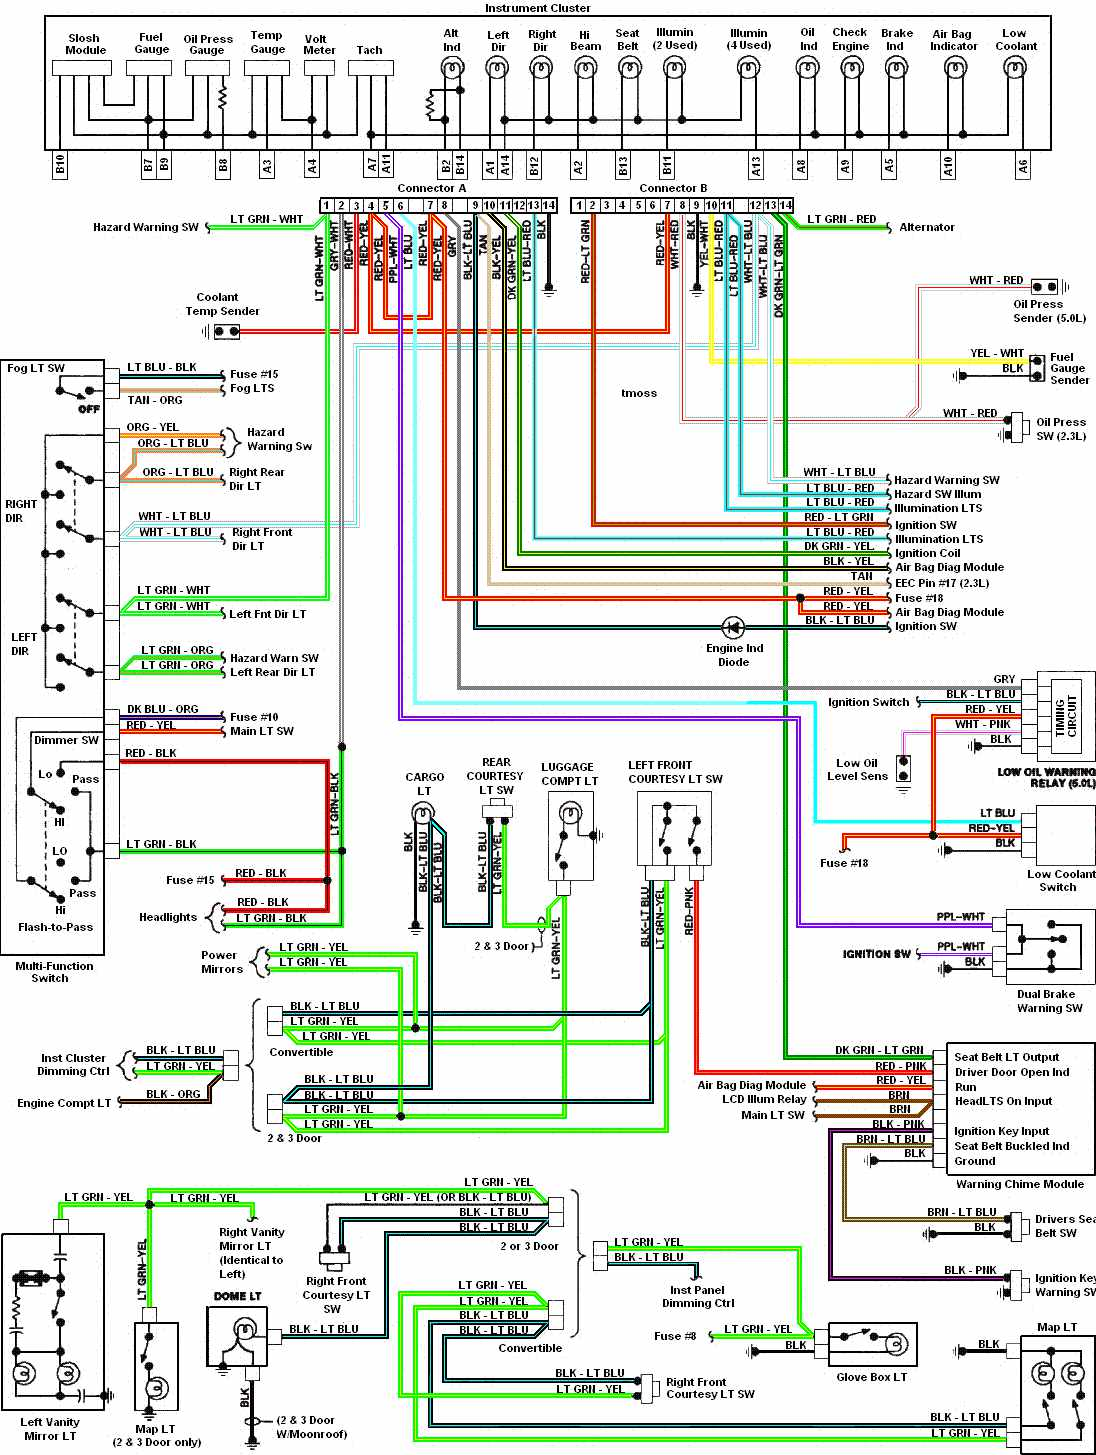 1993 ford mustang wiring diagram JrmPGgN alternator wiring diagram for 06 f150 udi schullieder de \u2022